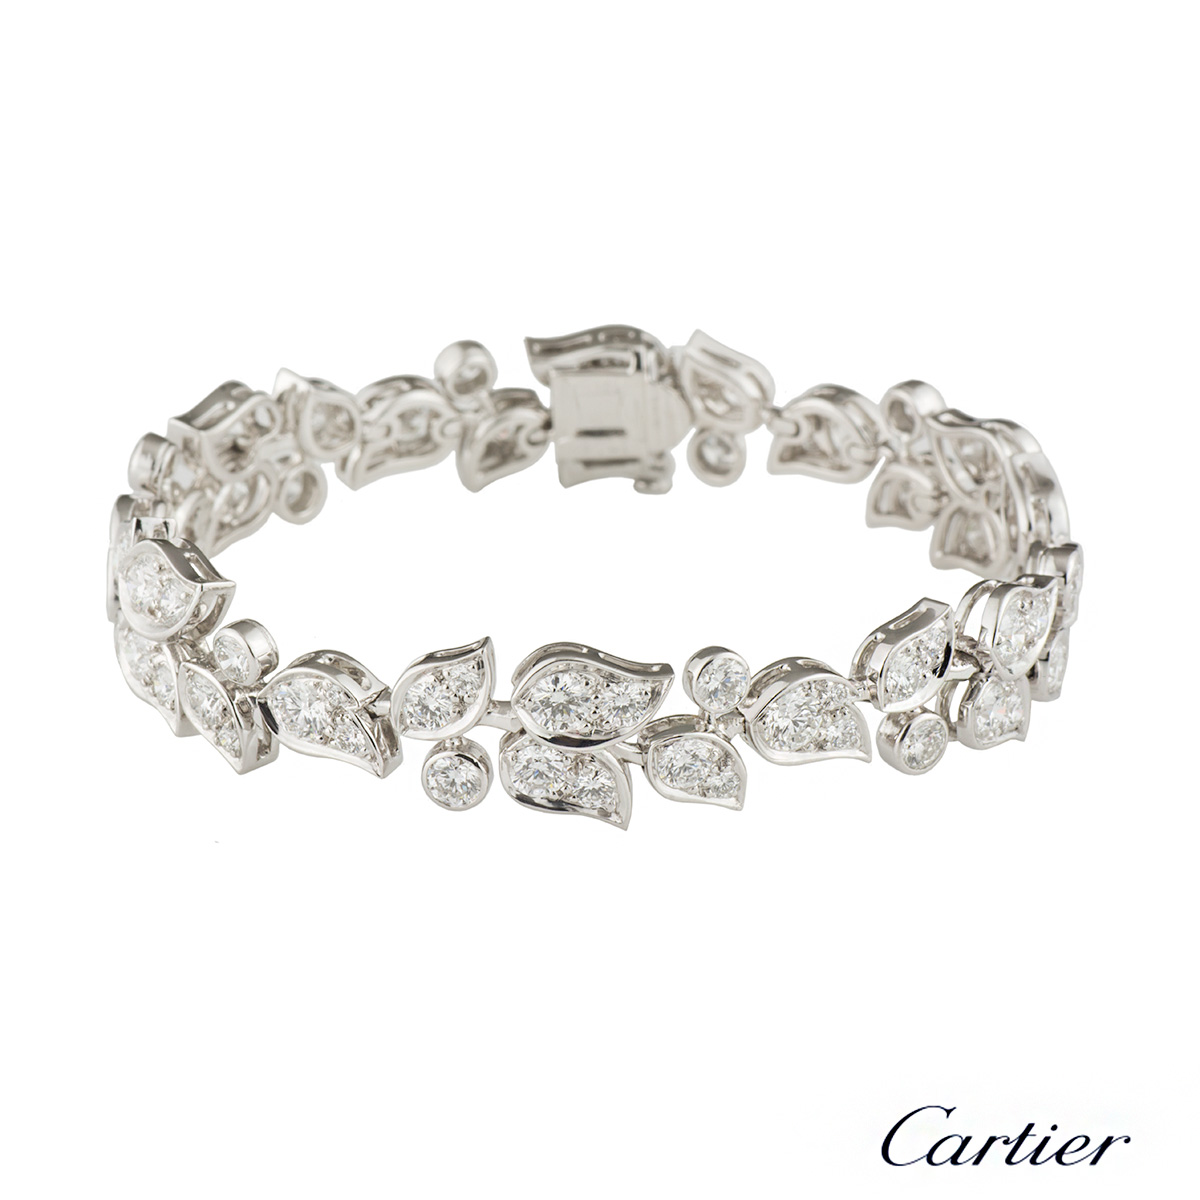 white cartier subsampling creative ring collection crop scale false poa and gold in diamonds upscale band cartierbridalsquare shop diamond wedding product